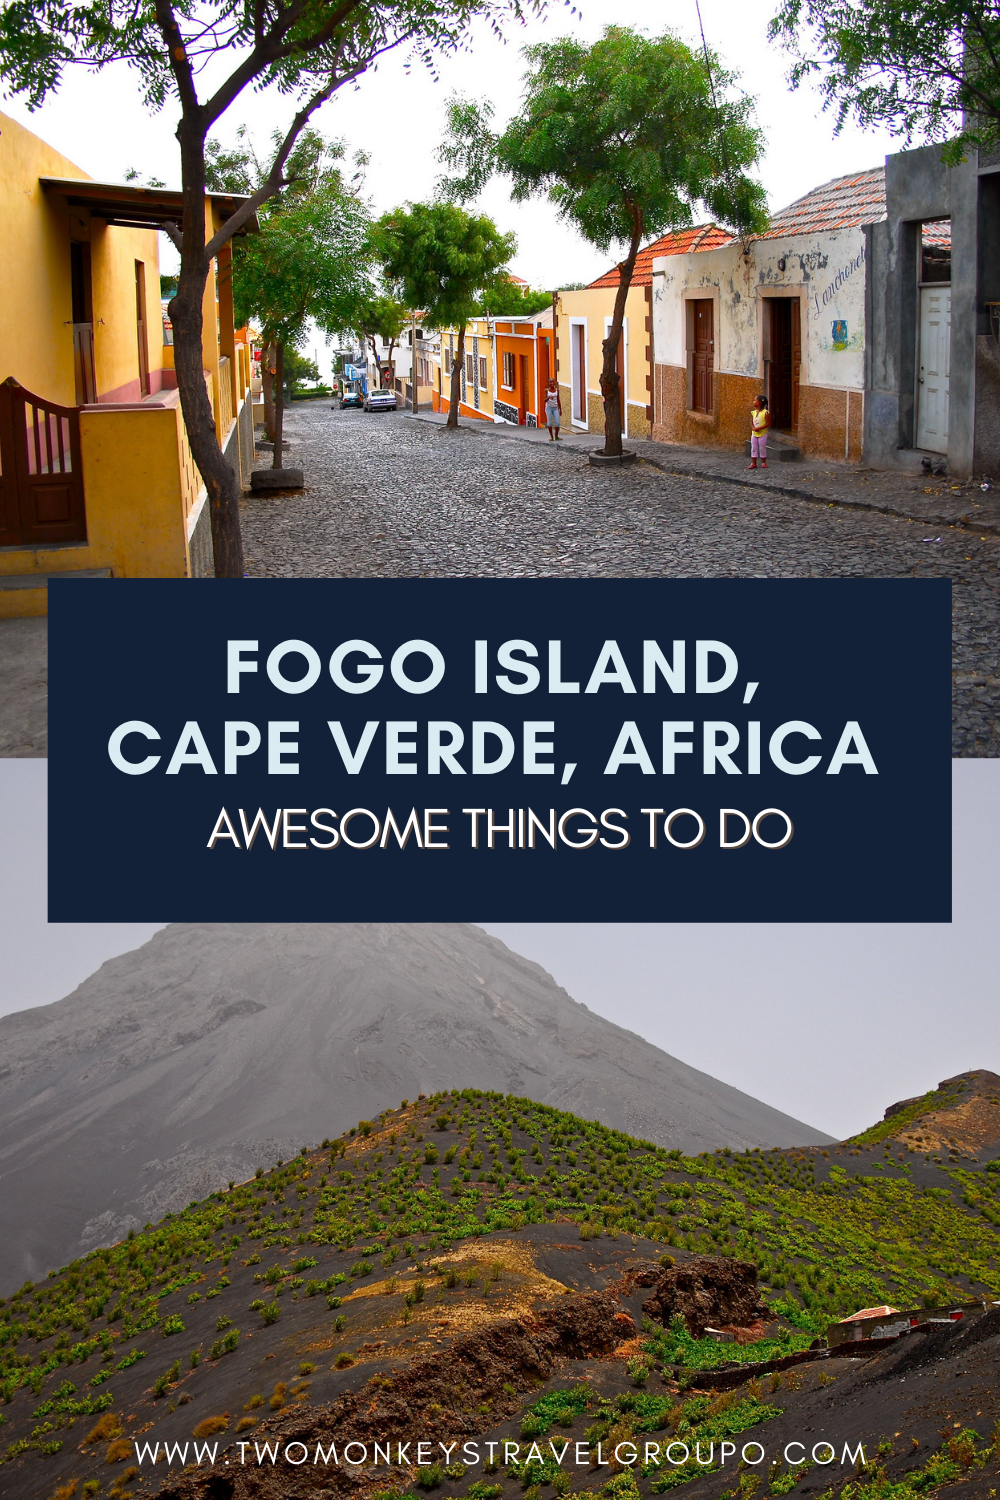 7 Awesome Things To Do in Fogo Island, Cape Verde, Africa